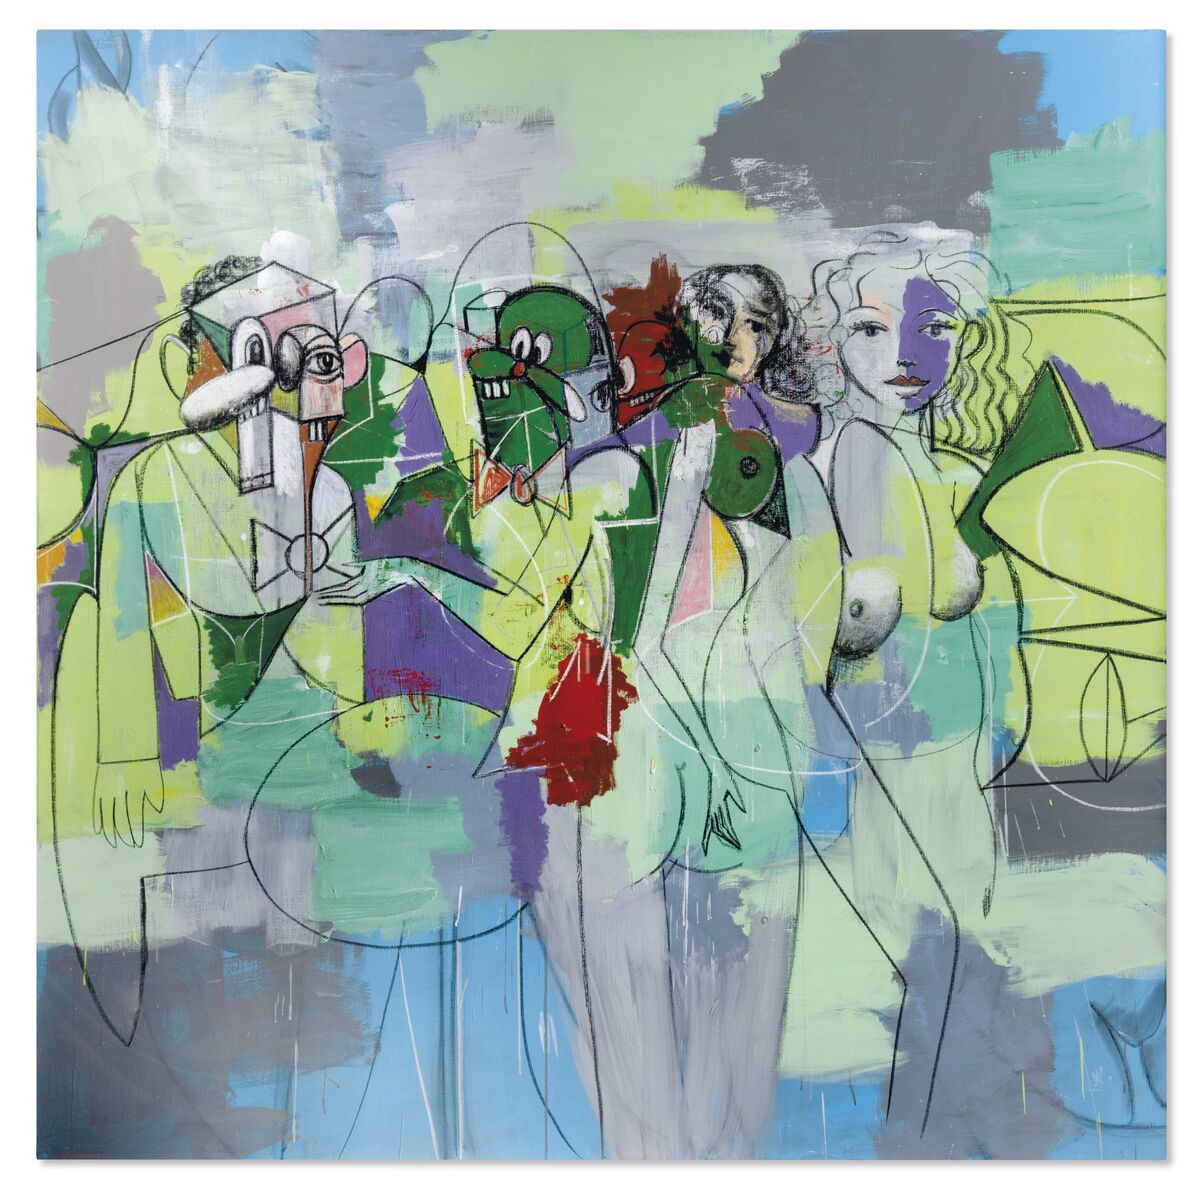 George Condo, Force Field, 2010. Courtesy of Christie's.